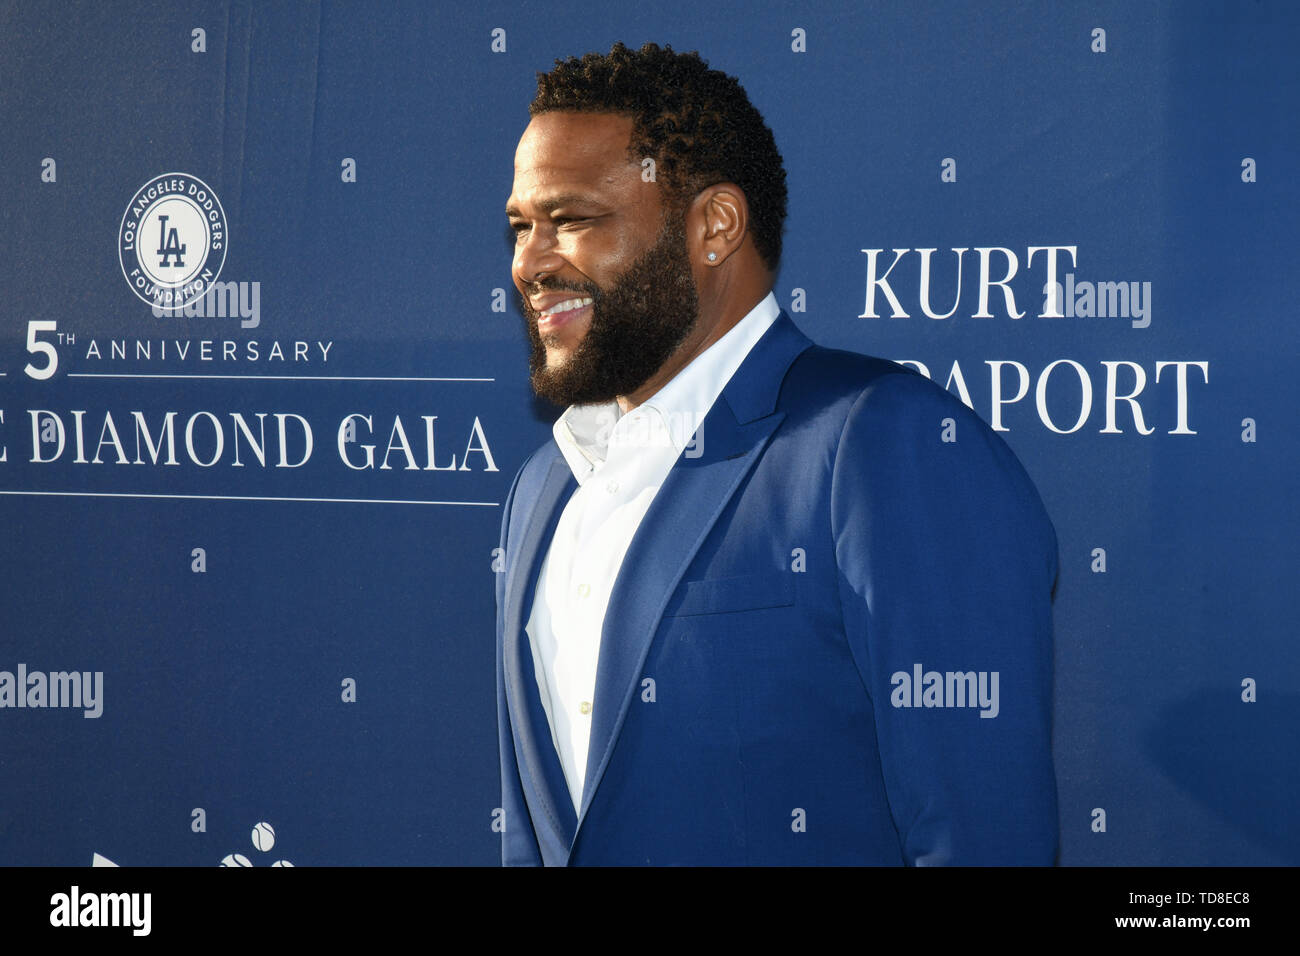 June 12, 2019 - Los Angeles, California, U.S. - 12 June 2019 - Los Angeles, California - Anthony Anderson. Los Angeles Dodgers Foundation Blue Diamond Gala held at Dodger Stadium. Photo Credit: Billy Bennight/AdMedia (Credit Image: © Billy Bennight/AdMedia via ZUMA Wire) - Stock Image